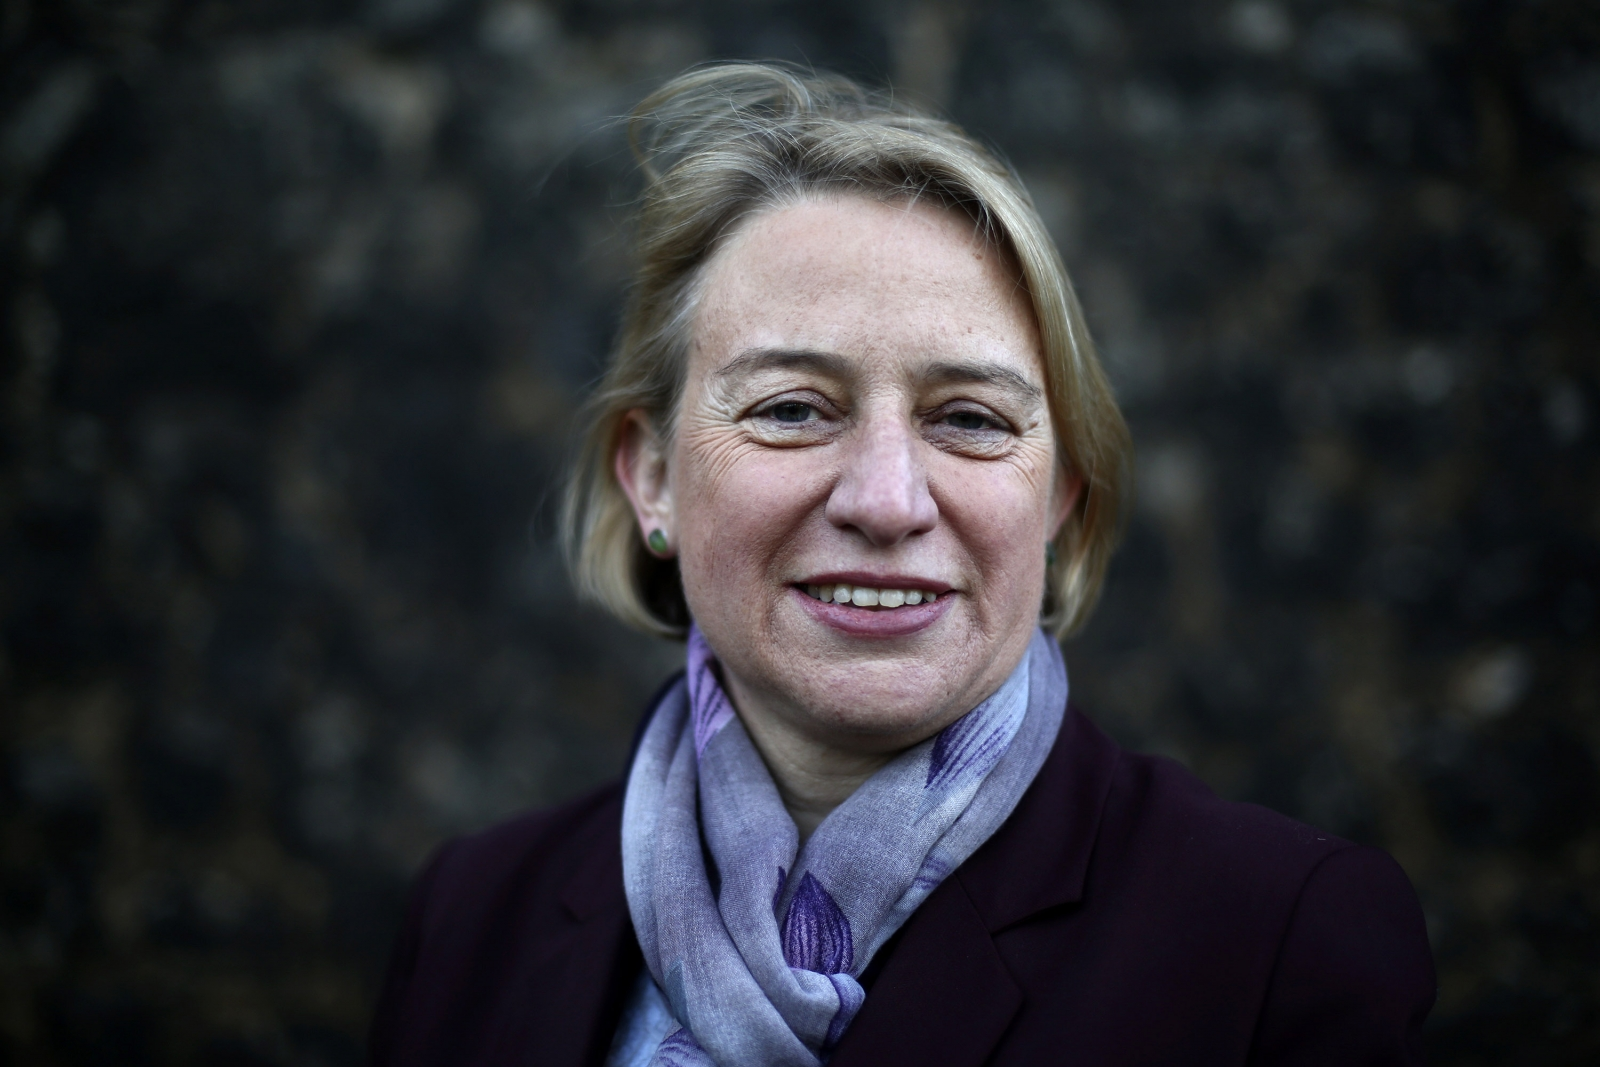 Green Party spring conference: Natalie Bennett bids to bounce back with 'message of hope'